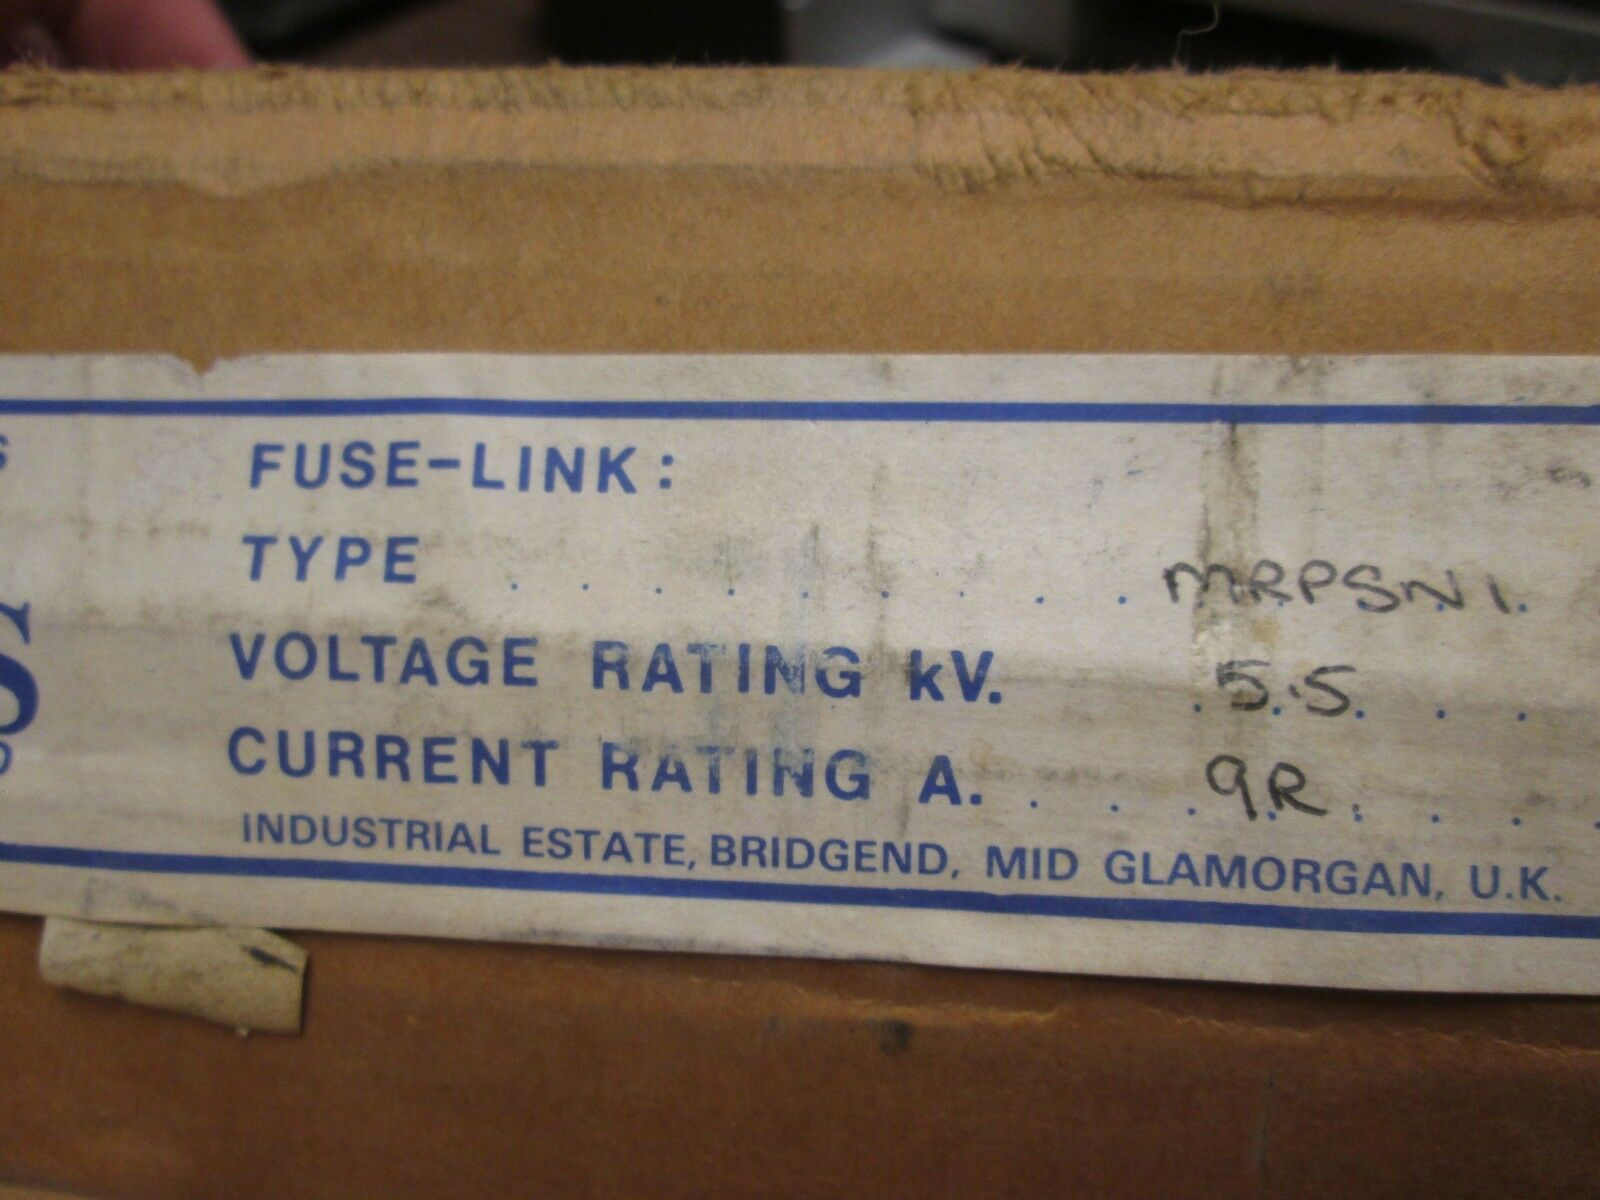 Westinghouse Fuse Style 6379D26H07 130A 5.5 KV Interr. Rating at 50//60 NIB 4R